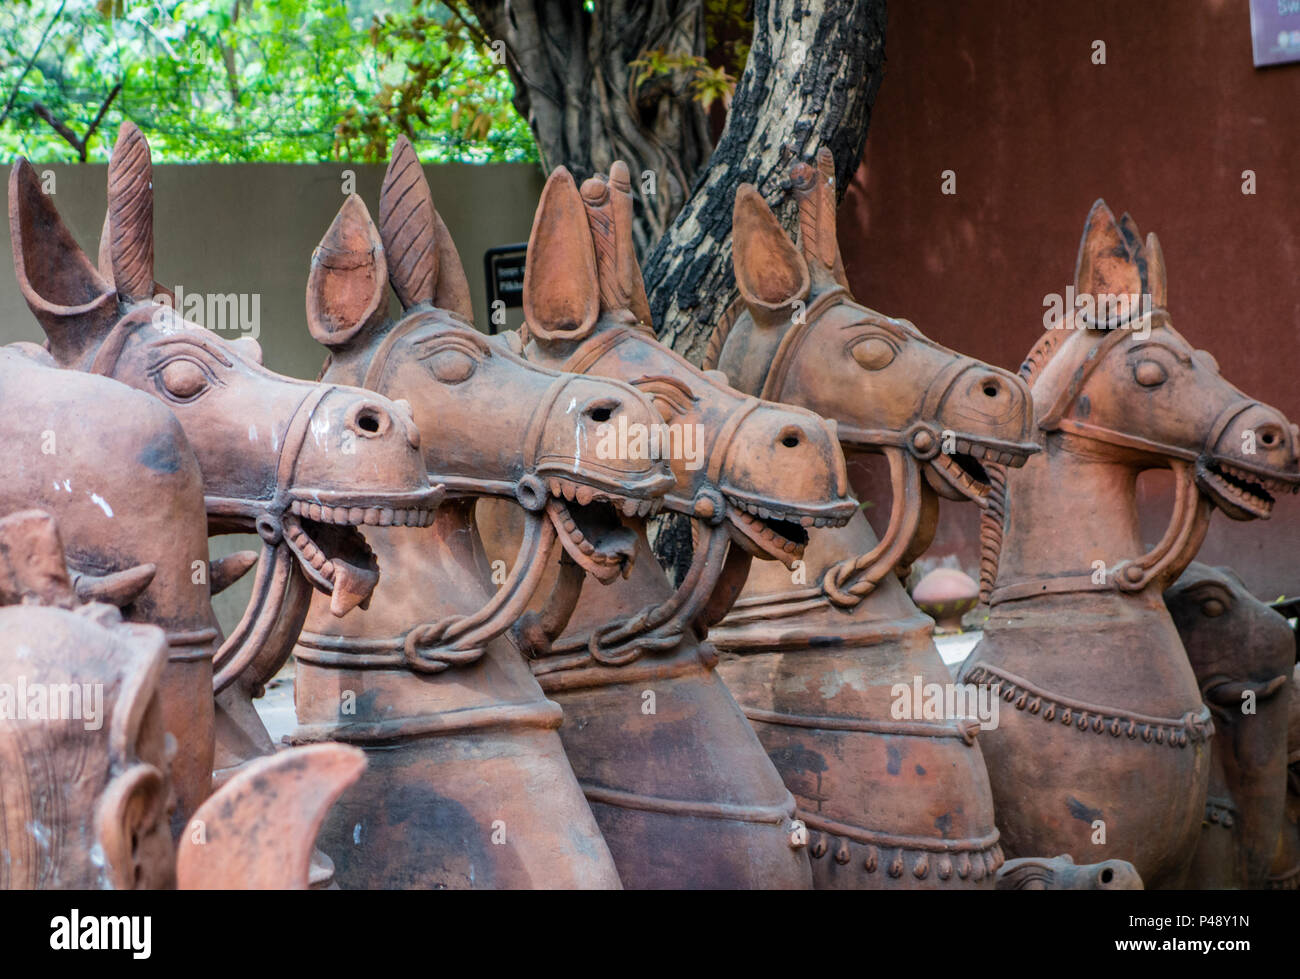 Exhibit of stone carvings of horses typical of Rajasthan in the National Crafts Museum, New Delhi, India Stock Photo